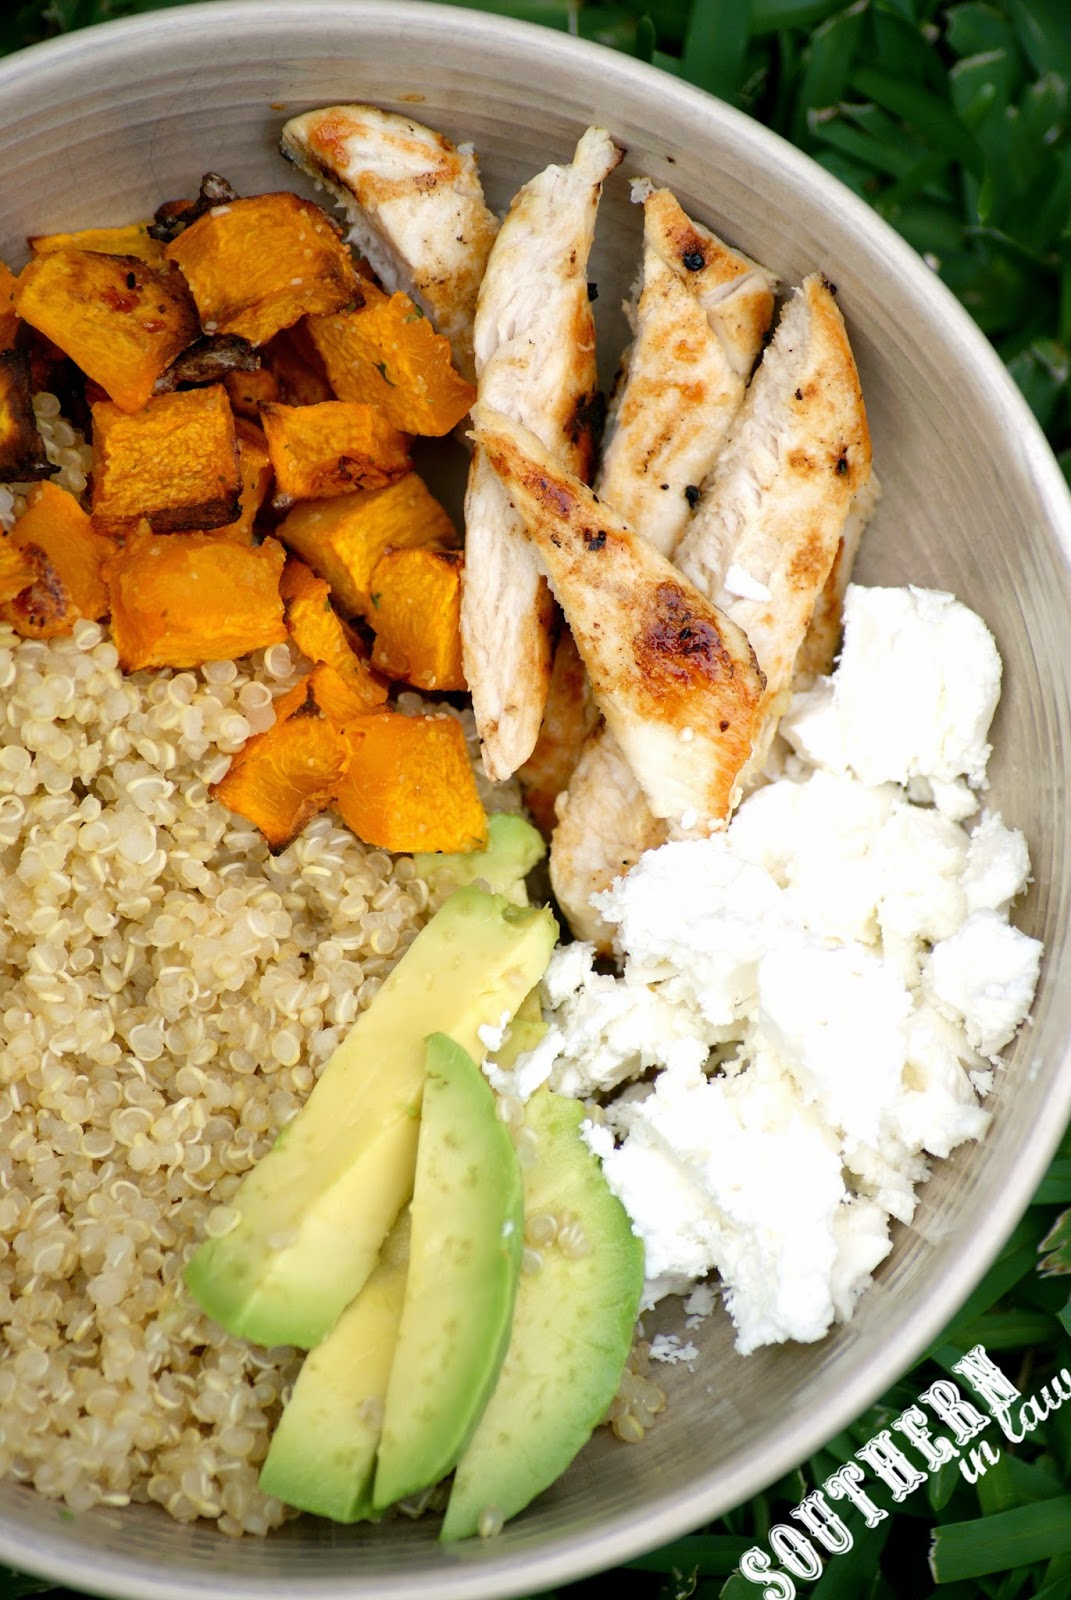 Gluten Free Roasted Pumpkin and Feta Quinoa Bowls Recipe - low fat, gluten free, vegetarian, clean eating friendly, lower carb, high protein, healthy